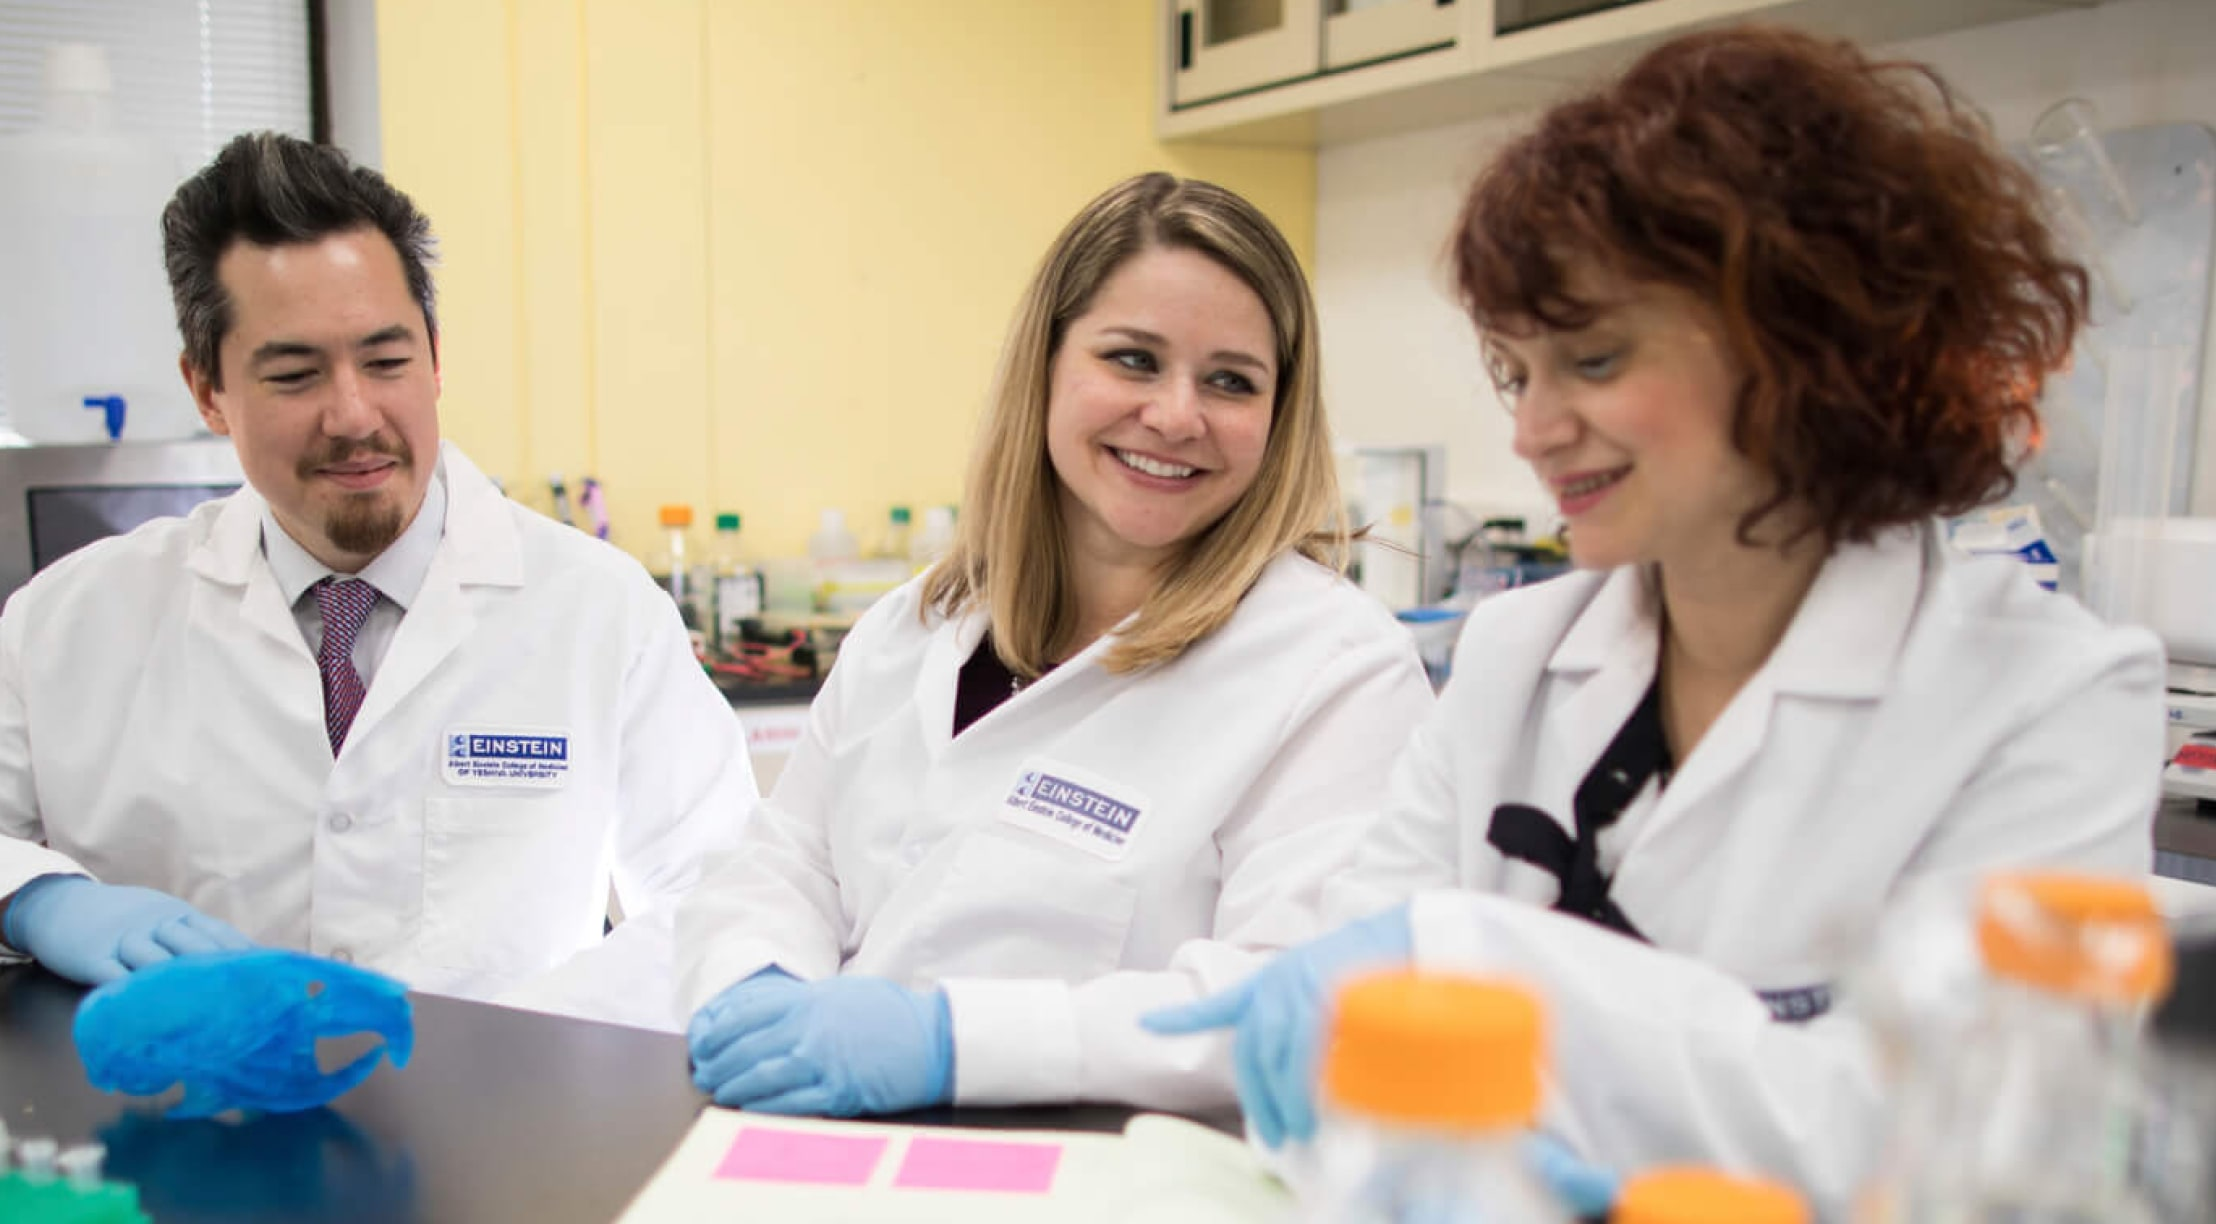 Dr. Autry working with fellow researchers in the lab.